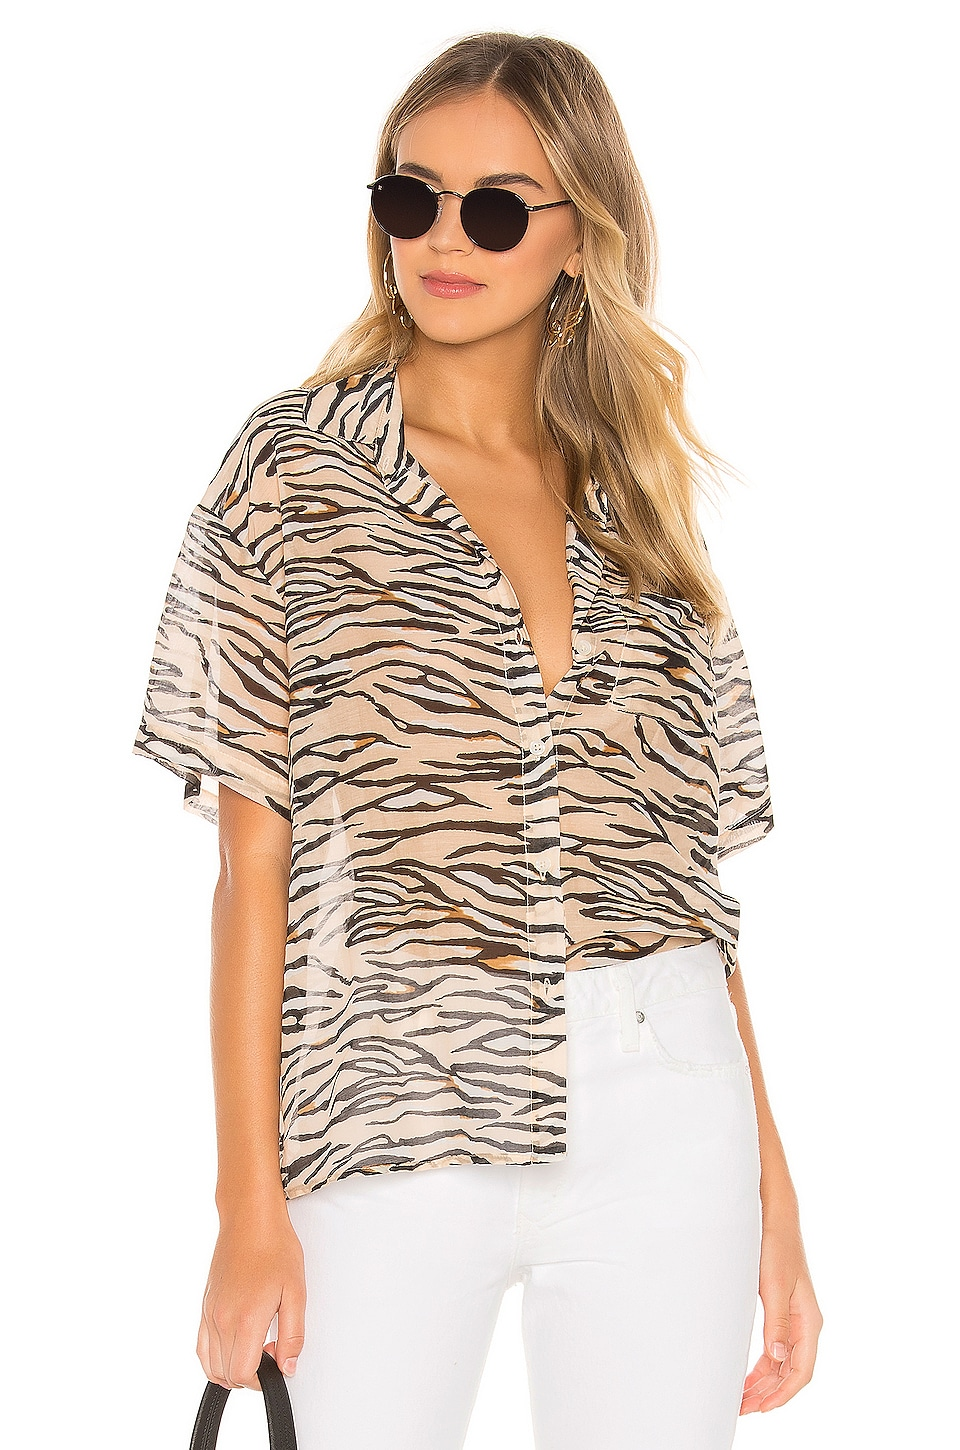 Le Superbe Club Tropicana Shirt in Nude Tiger